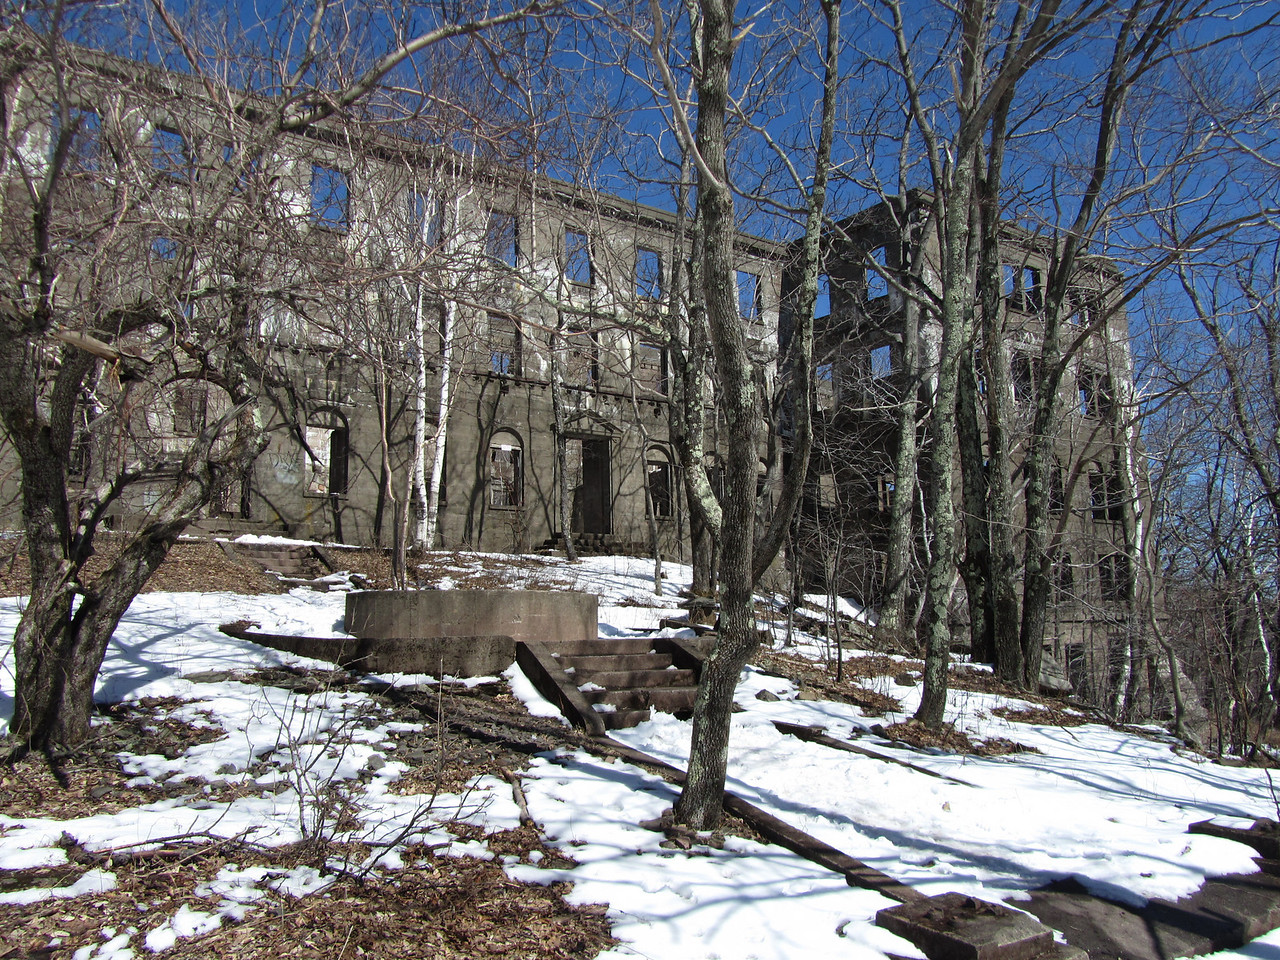 Overlook Mountain house. I'm sure this was an amazing sight in the heyday. Women in dresses and hats and umbrellas, men in suits sipping scotch trading stock tips. I'd like to see it fixed up.